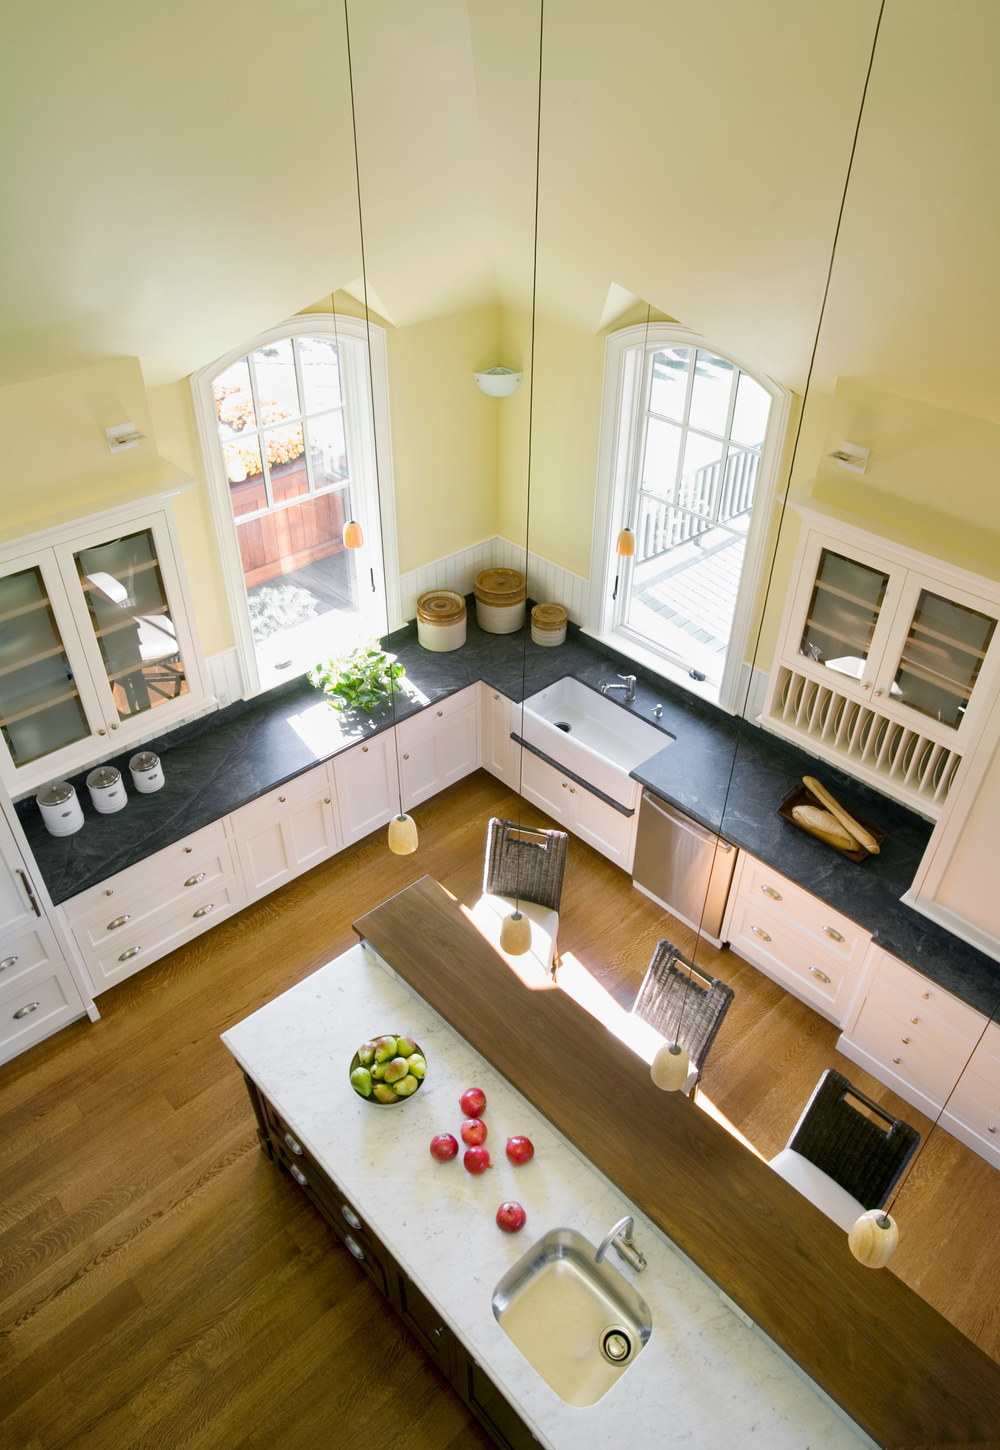 DNE_Doreve_RI_10_07_kitchen_from_above.jpg